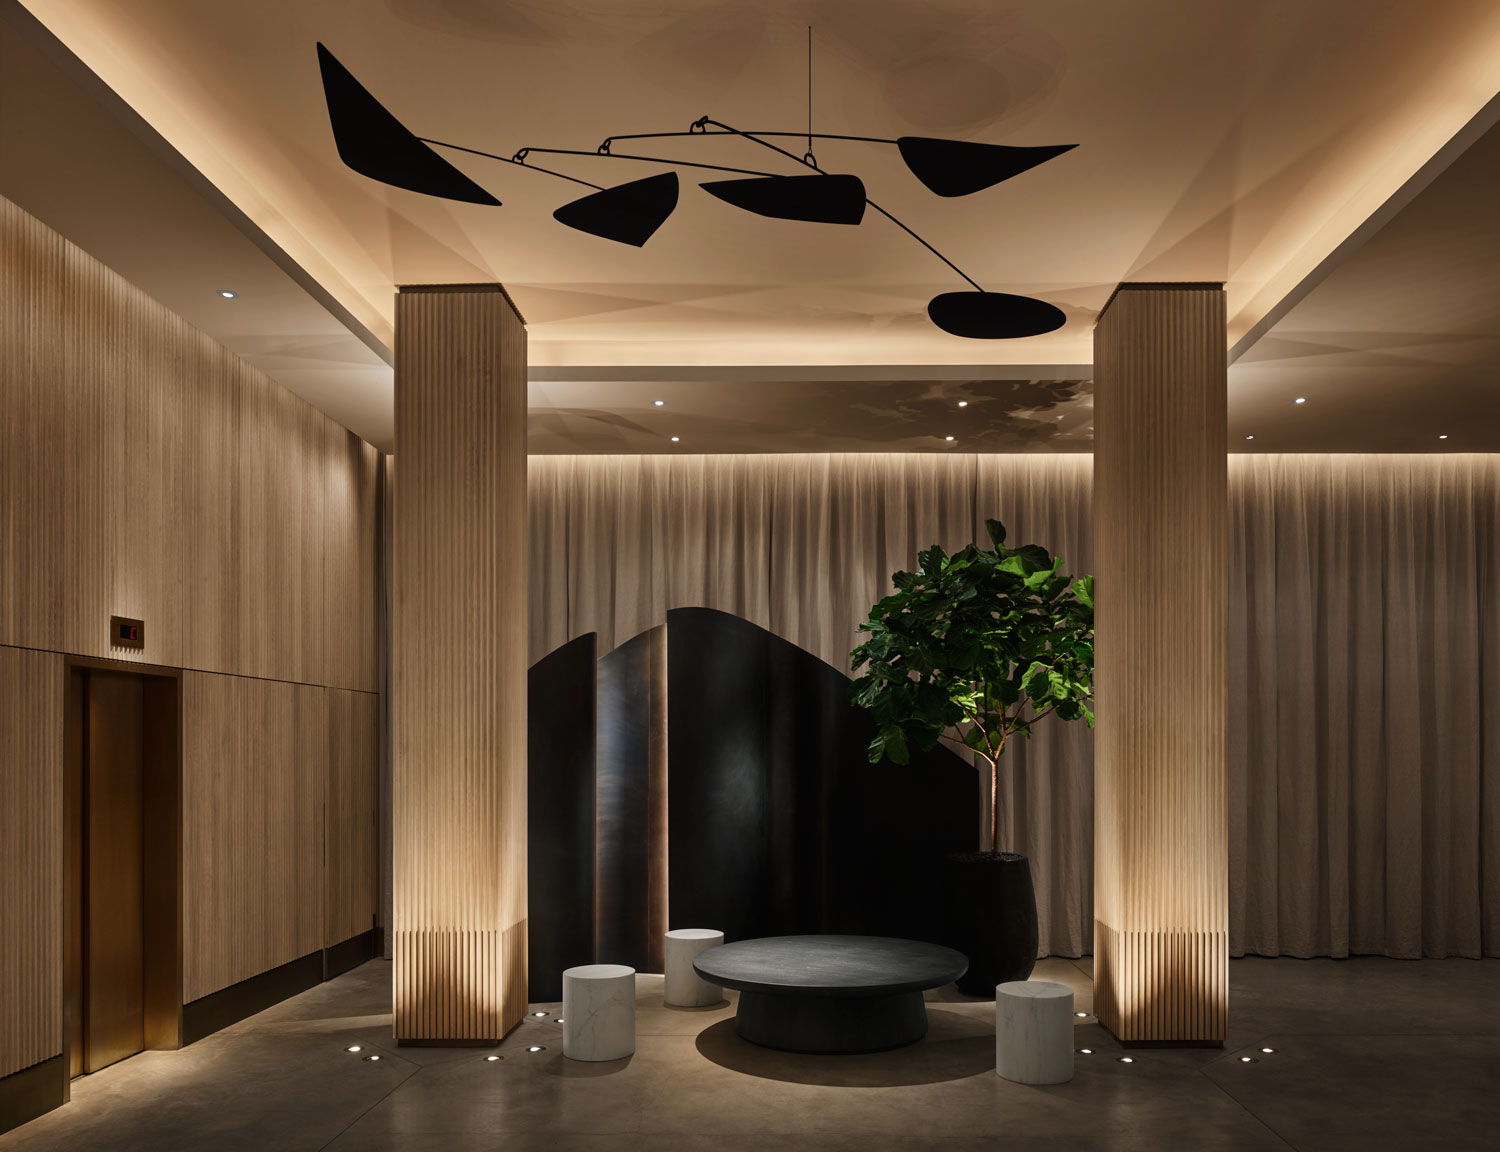 11 howard hotel opens in new york yellowtrace for Design hotel copenhagen